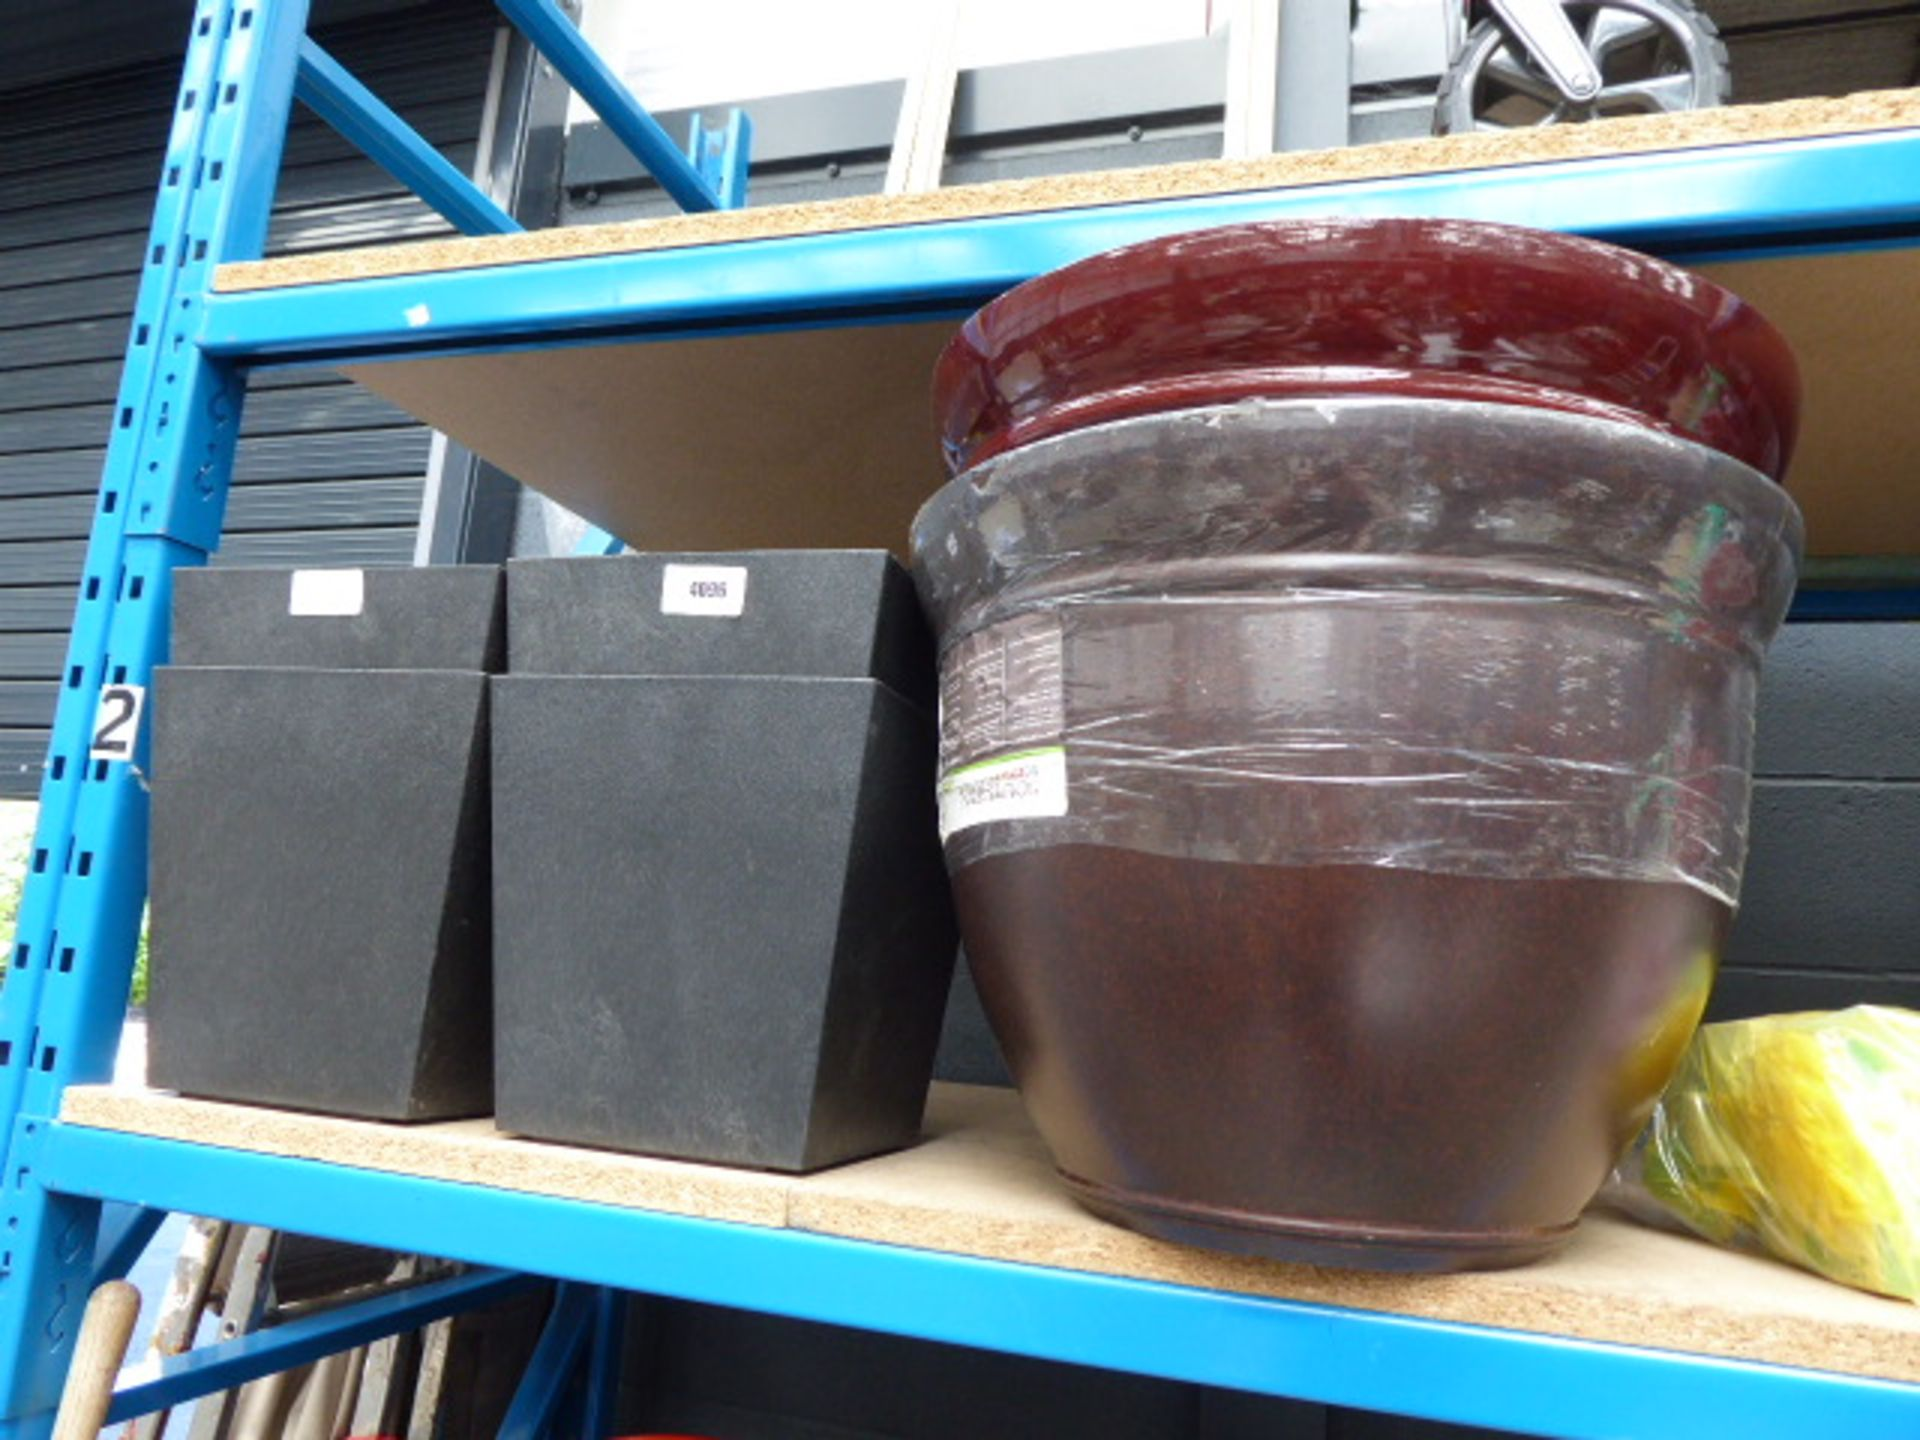 Lot 4096 - 4 small black pots and 2 large round pots